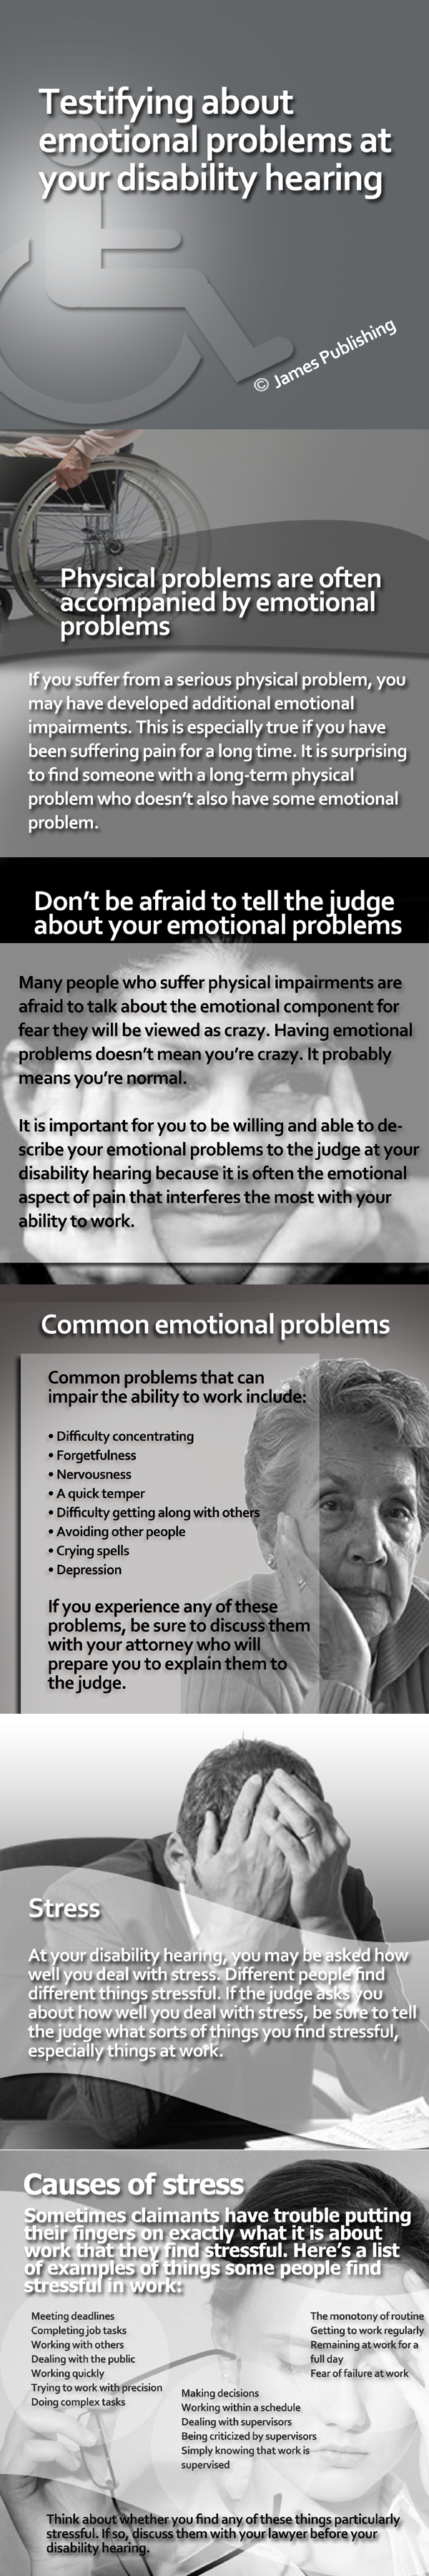 testifying-about-emotional-problems